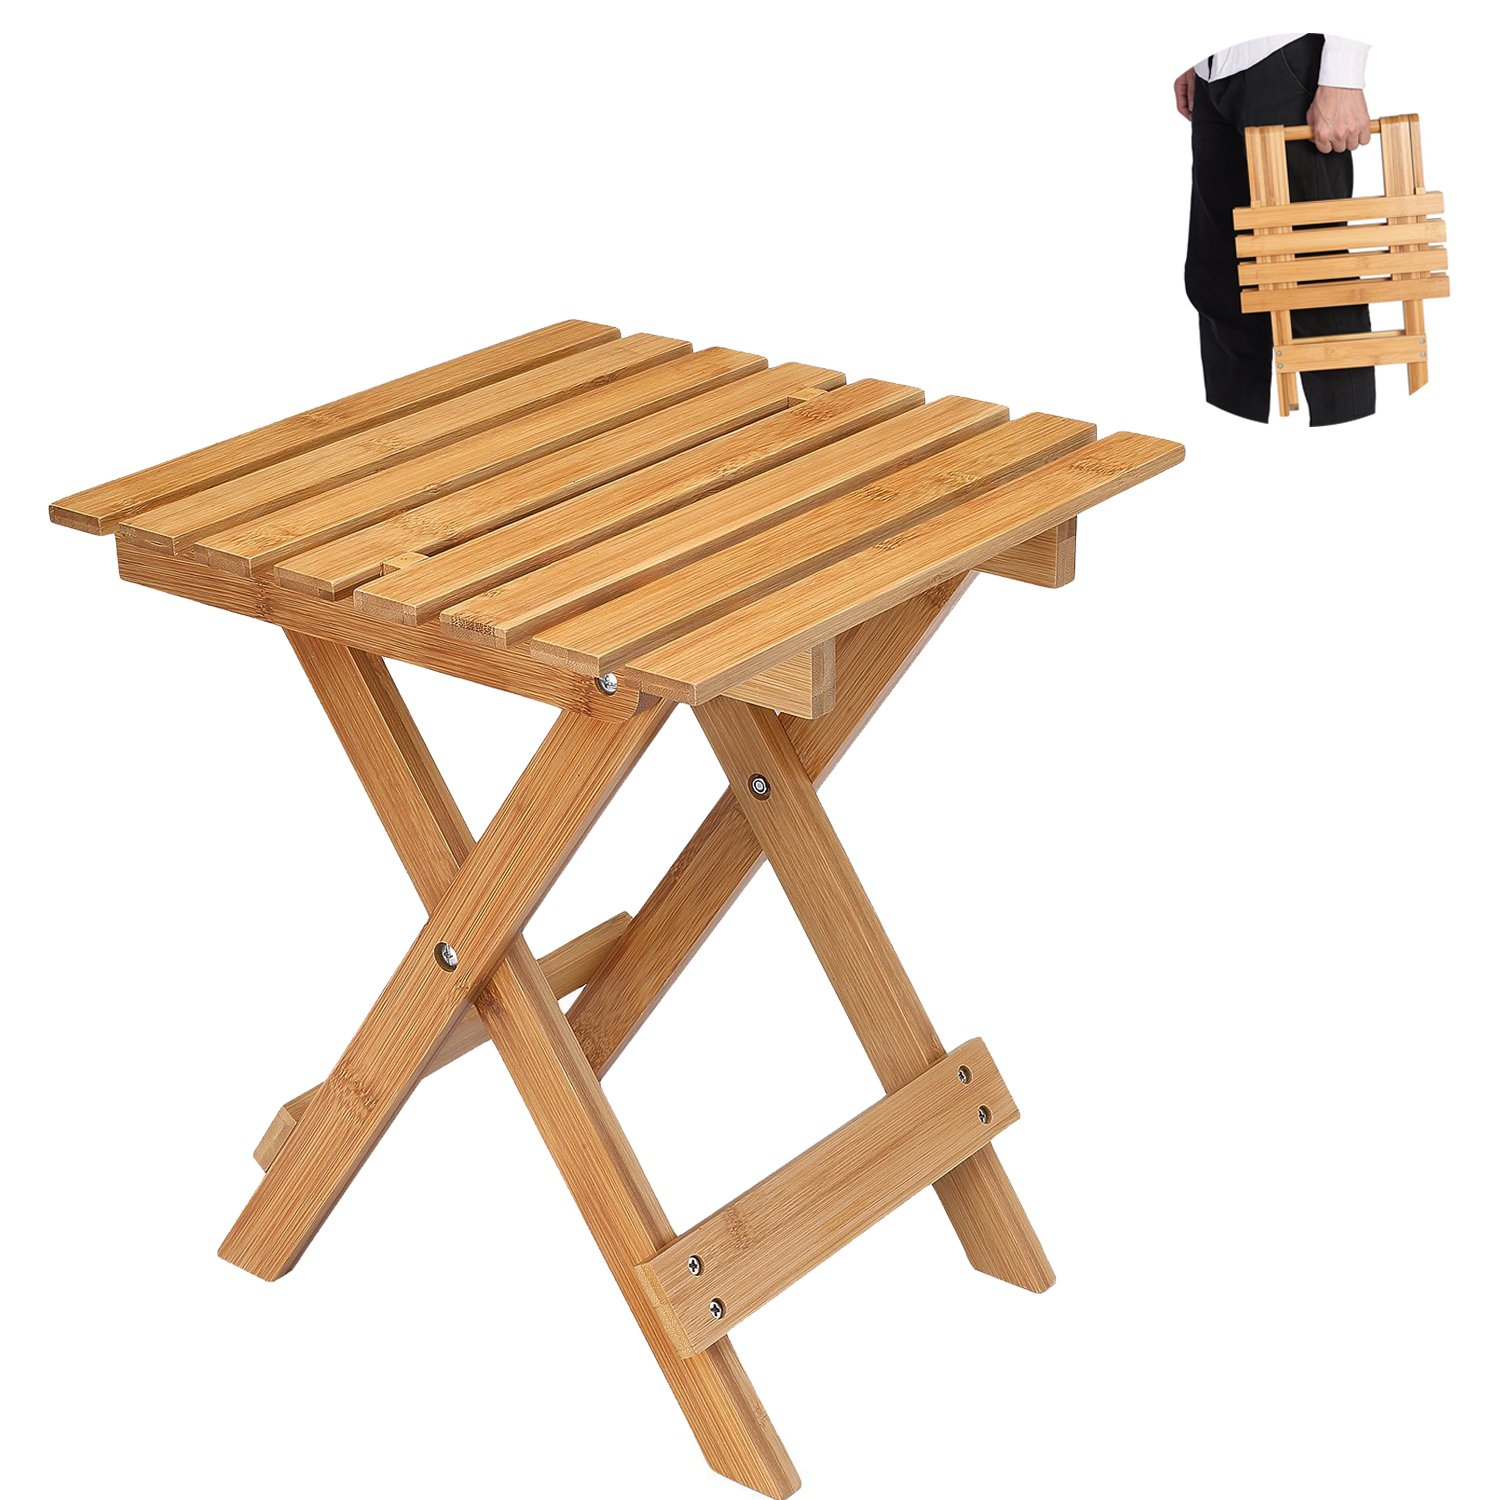 Utoplike Foldable Stool Bamboo Stool Bamboo Folding Stool For Indoor And Outdoor Garden Picnic Sitting Resting